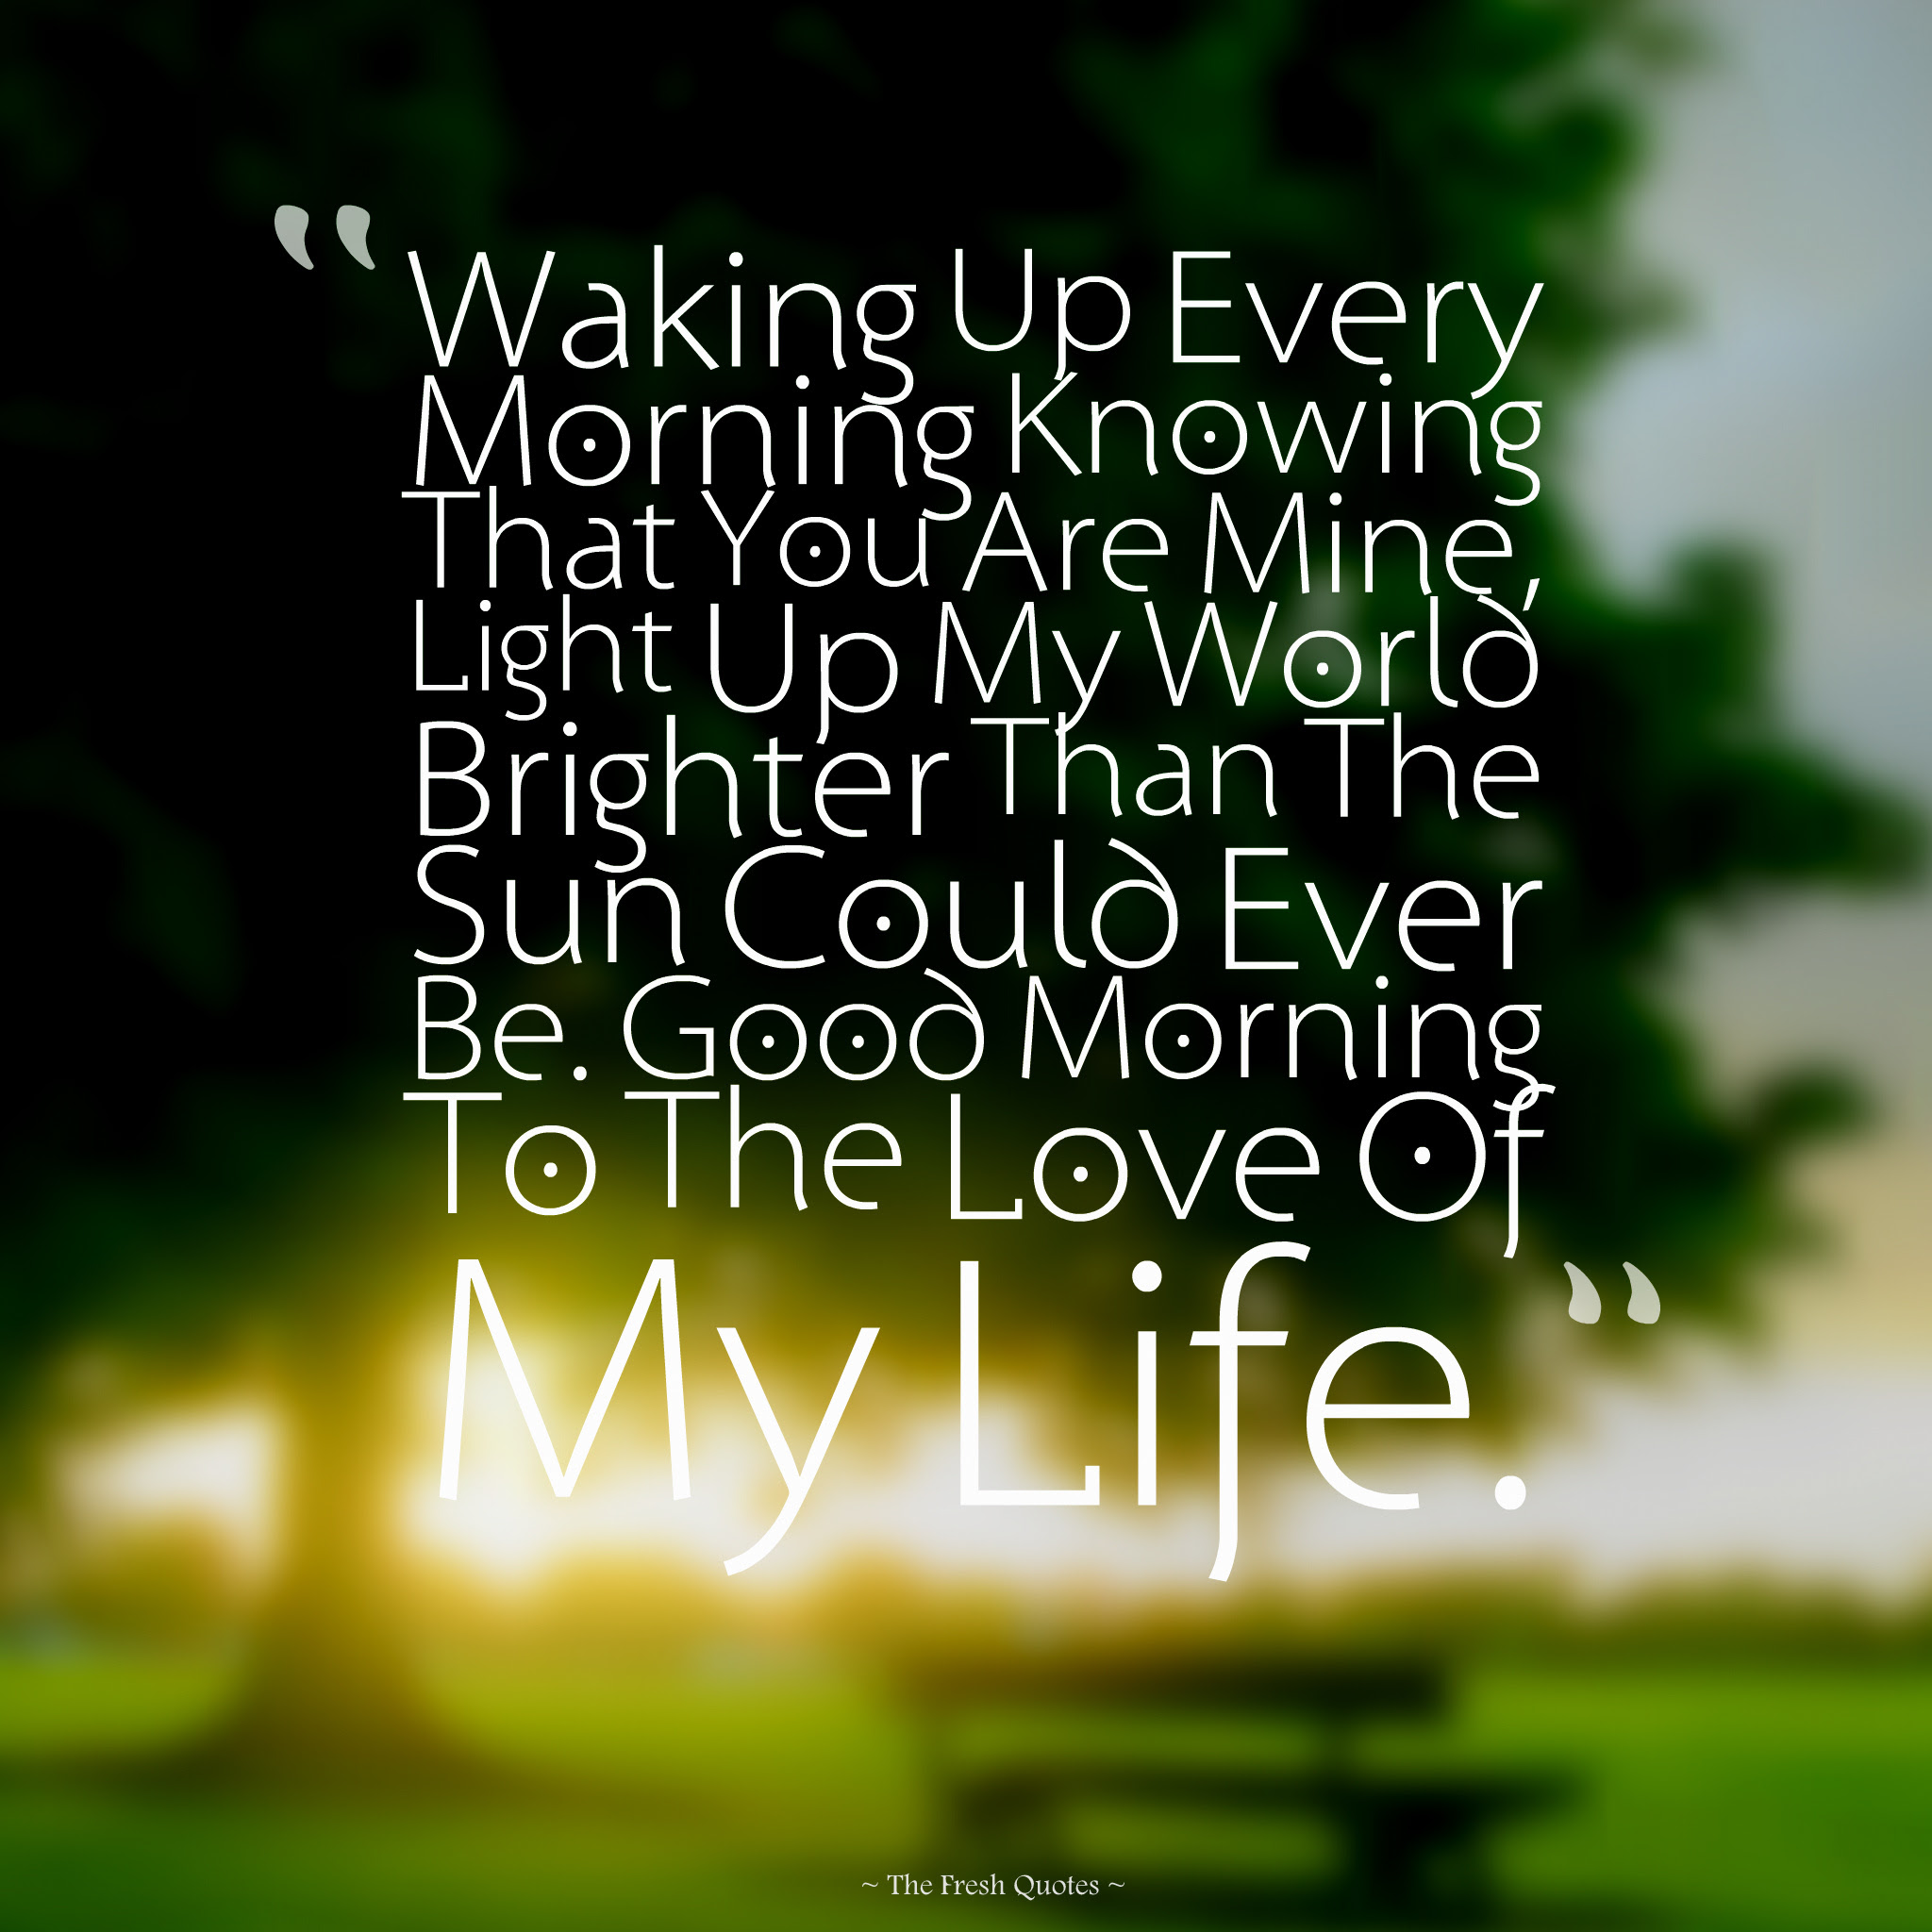 Quotes About Love In Morning 127 Quotes